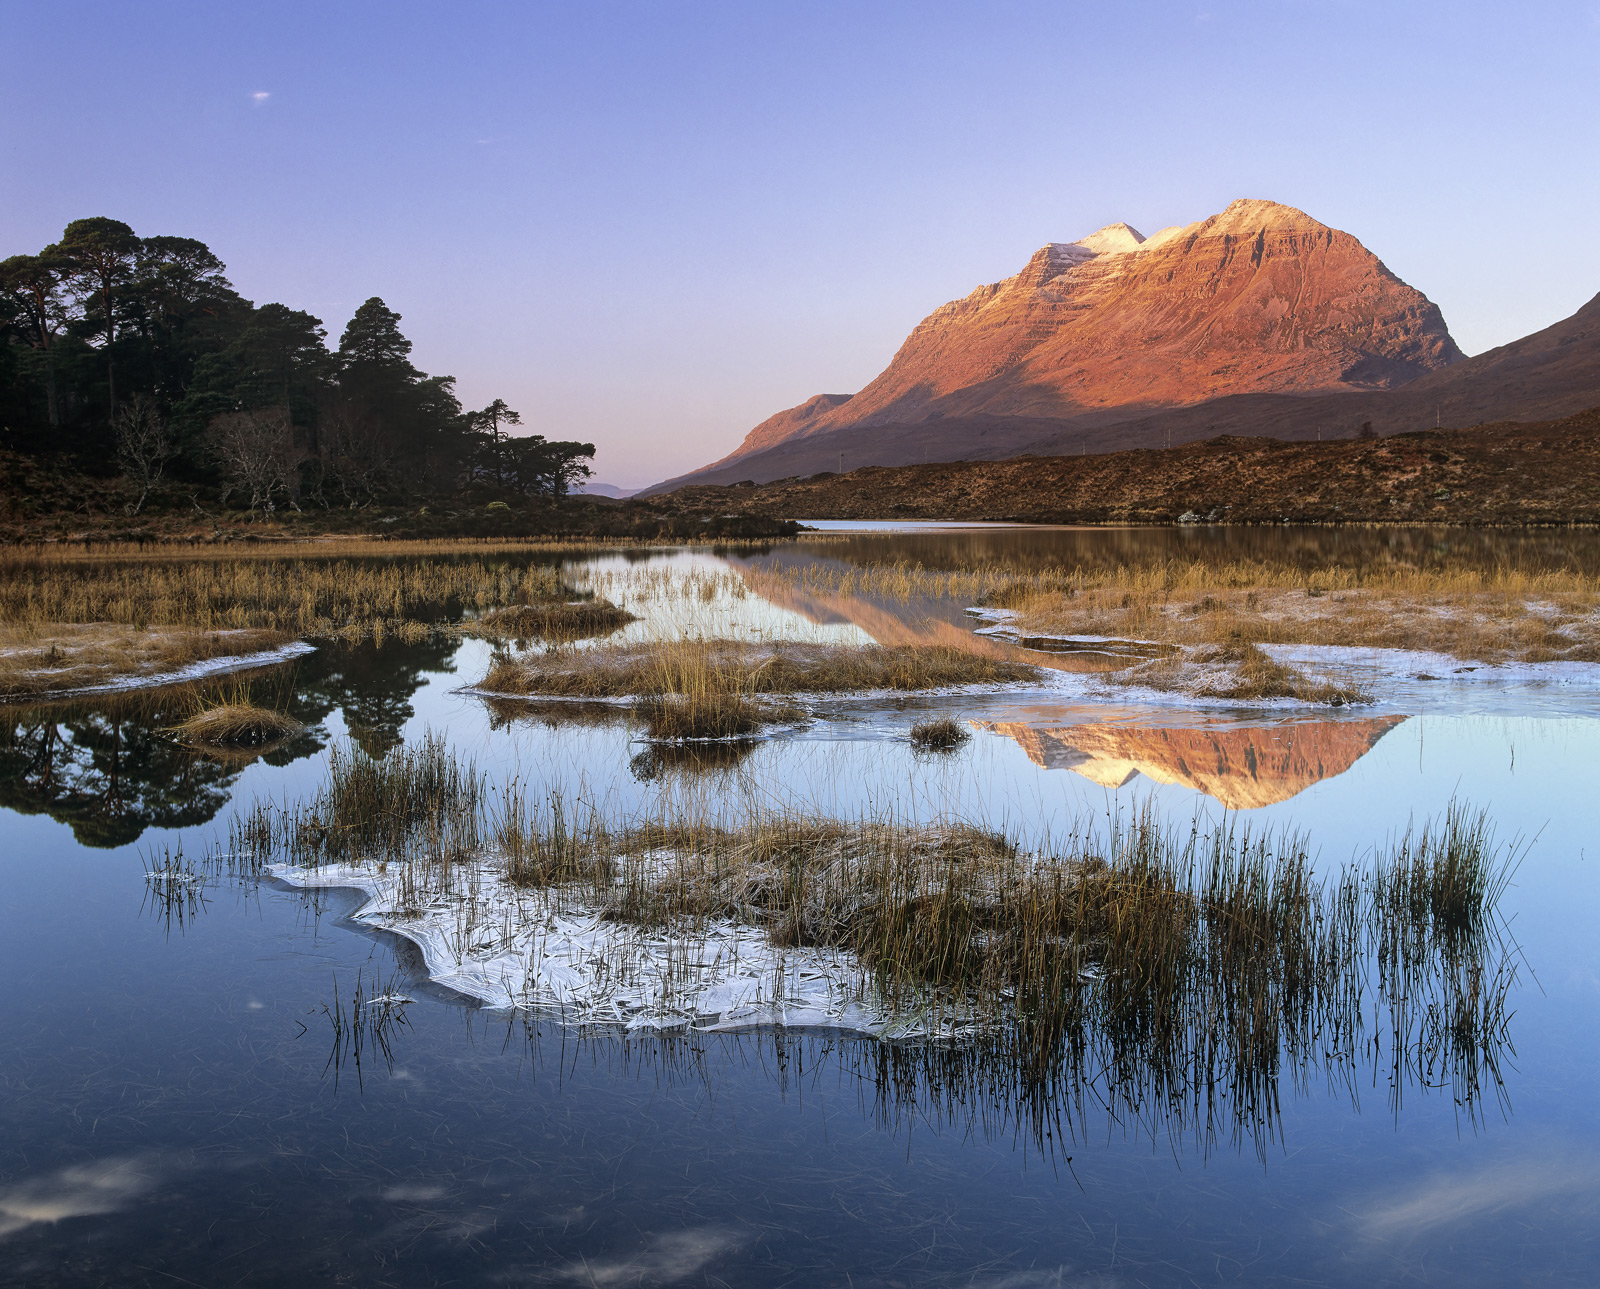 Liathach Saffron, Loch Clair, Torridon, Scotland, chilly, blue, red, sky, peaks, ice, plate, crystalline, snow, sunlight, photo